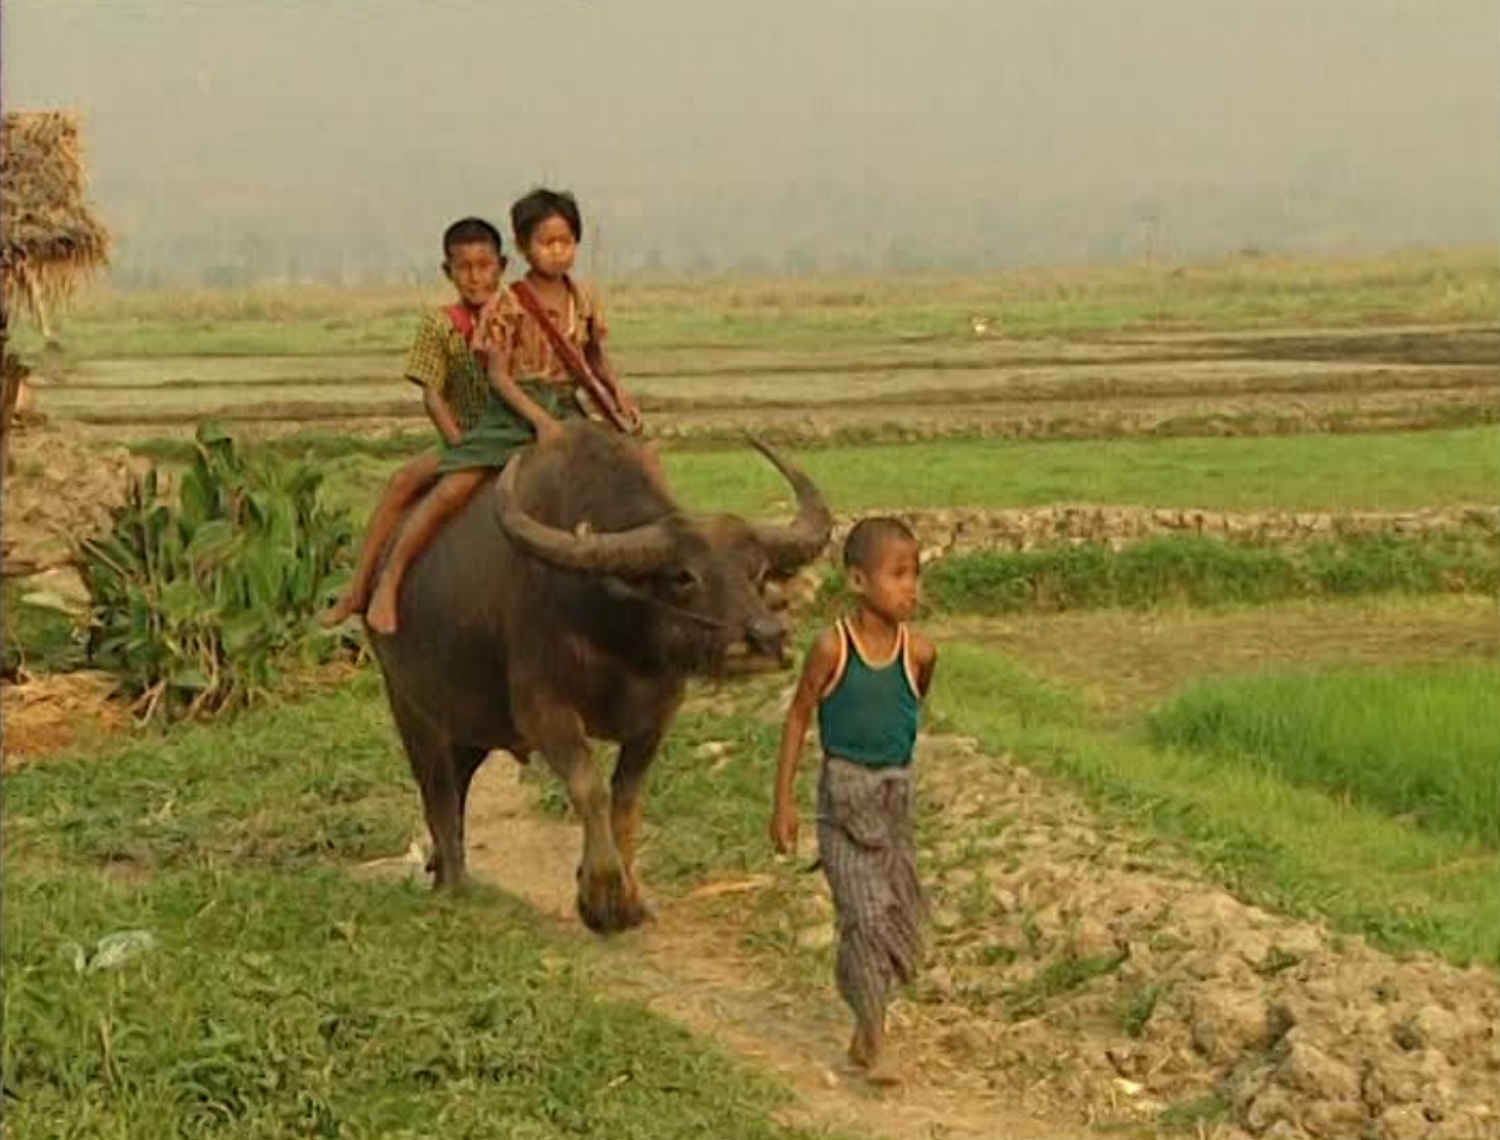 Thai village boy pulling a water buffalo along a rice field with thai children riding on its back. Our work ethic is derived from working in the rice fields of Thailand.